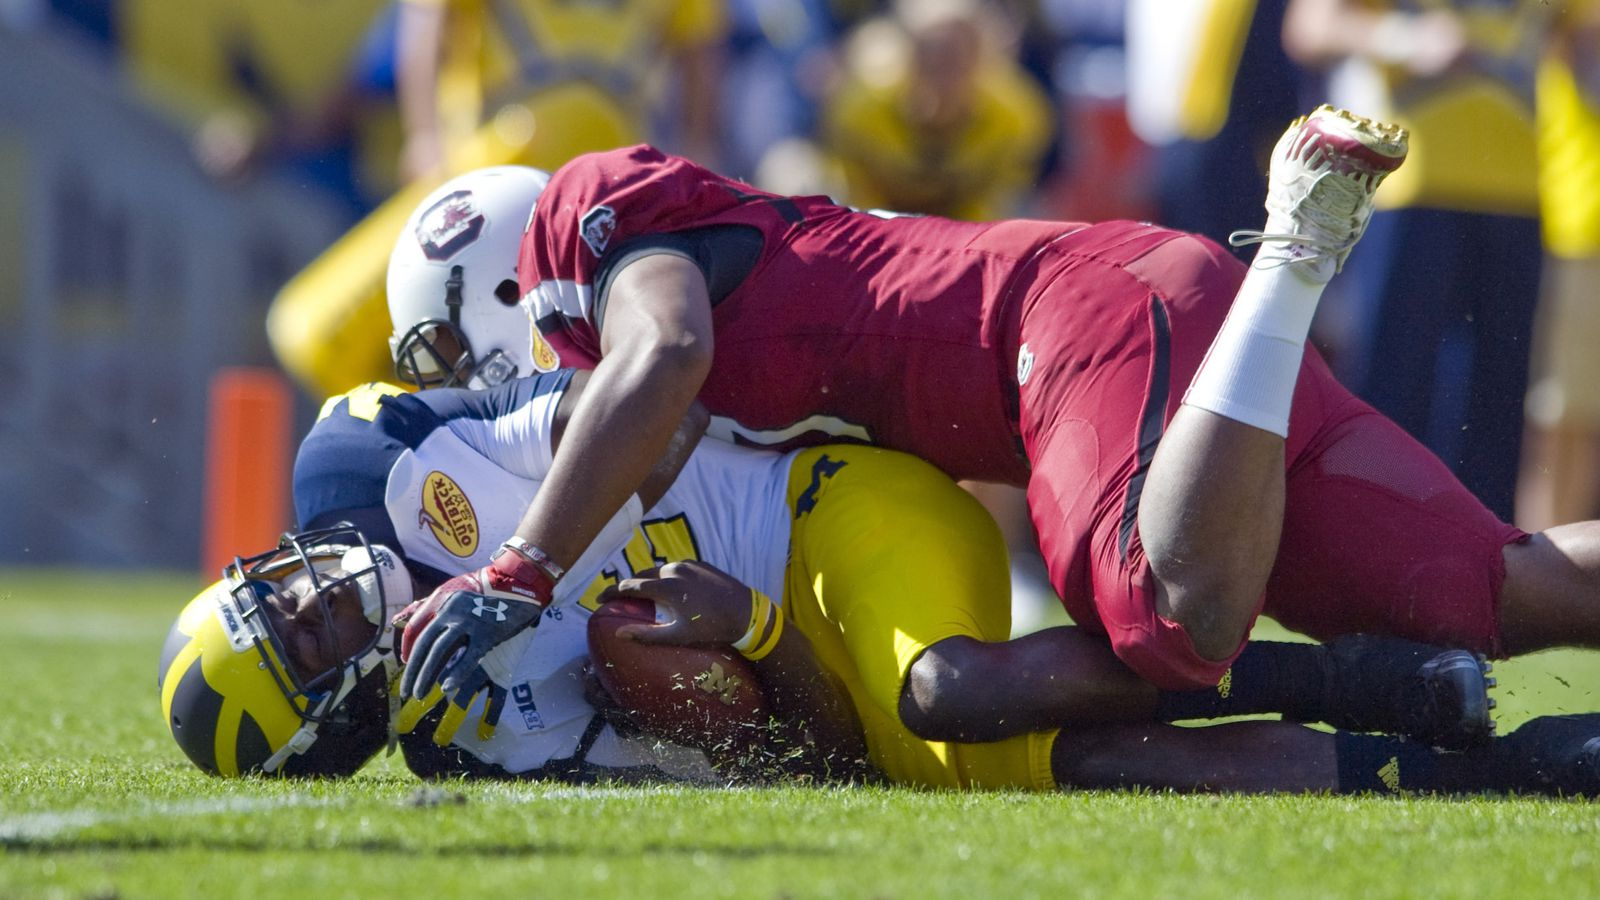 Michigan Can't Finish, Loses to South Carolina 33-28 ... | 1600 x 900 jpeg 180kB